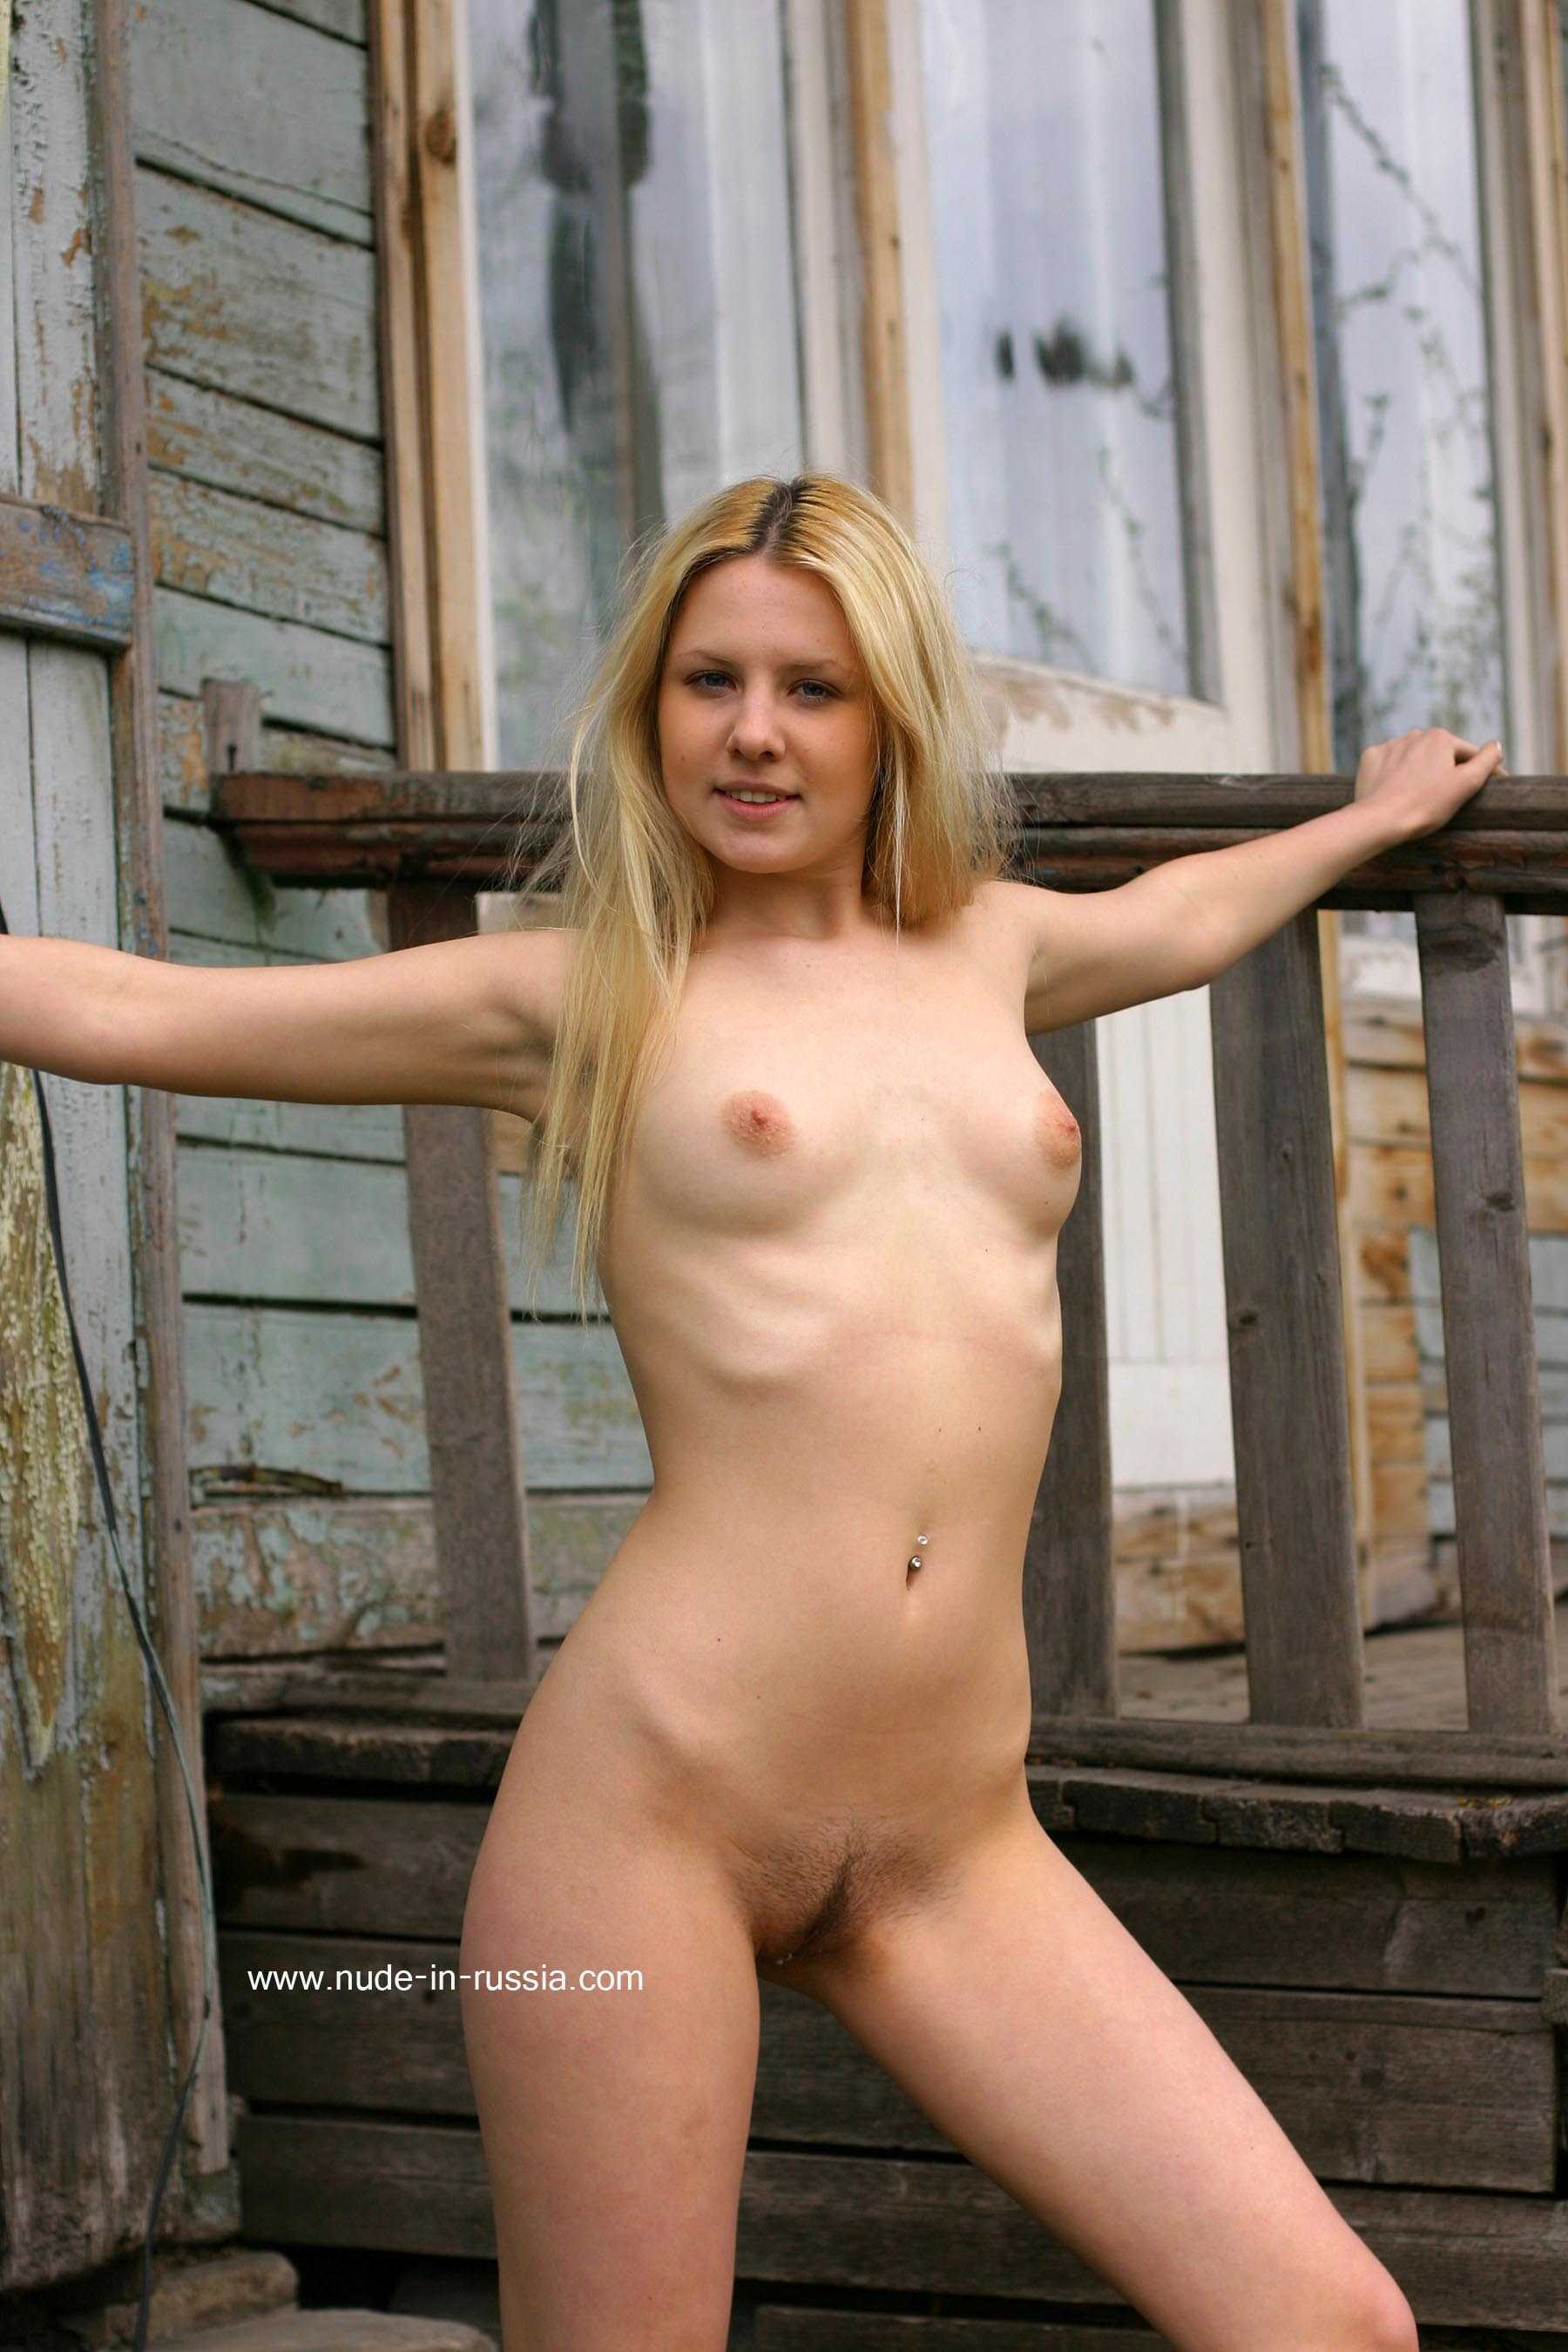 Molly parker nude photos